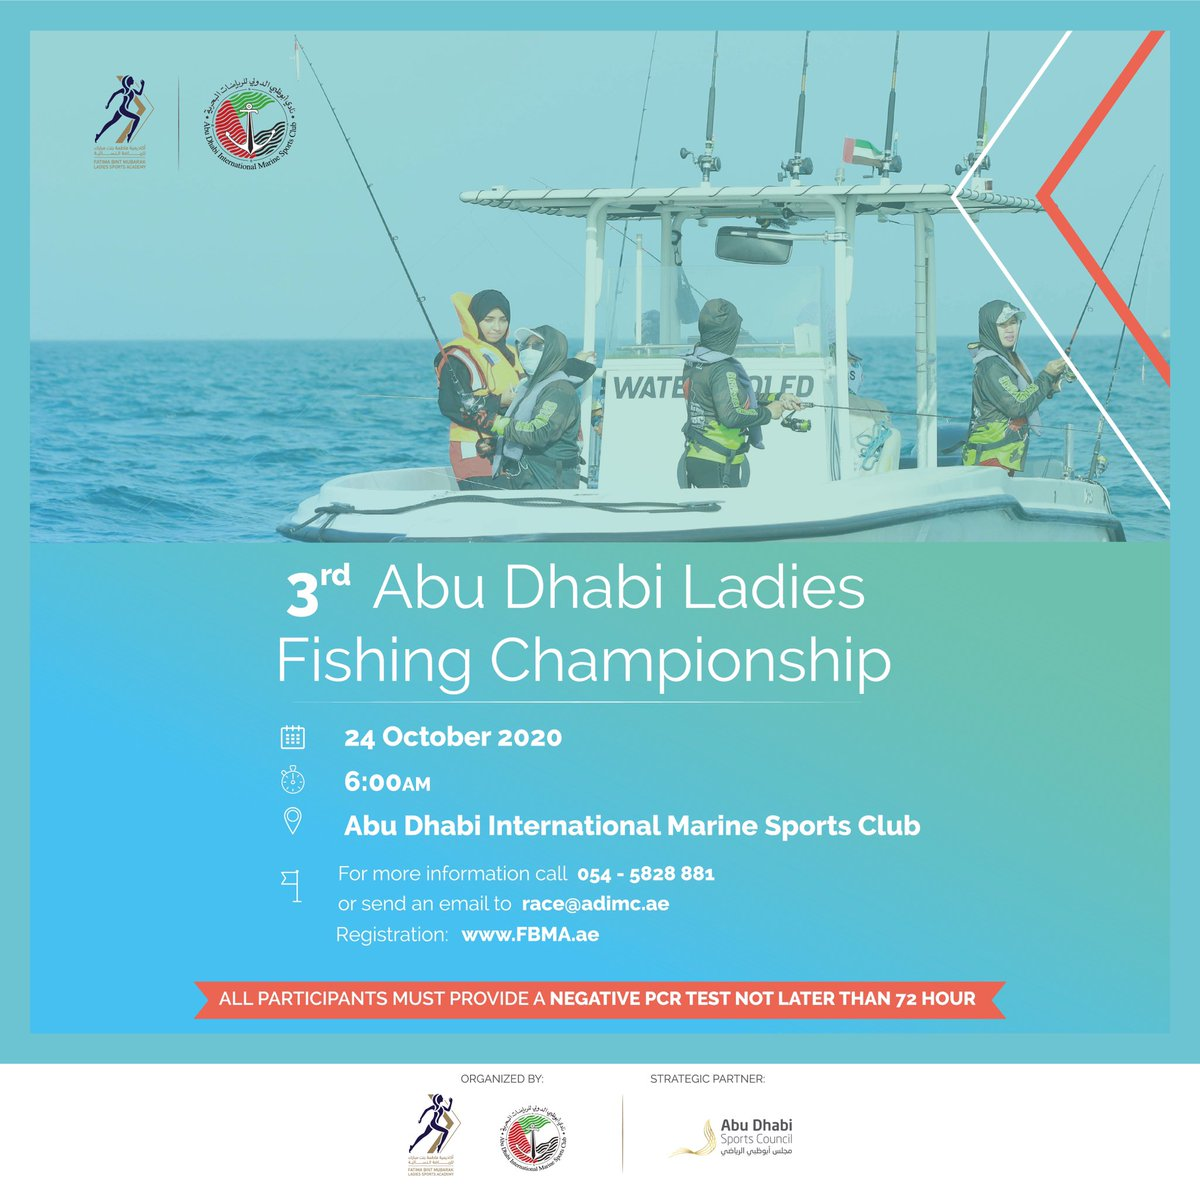 FBMA brings back the 3rd Abu Dhabi Ladies Fishing Championship 🎣on the 24th of October! Register now and join the championship 💪🏼 Registration link ⬇️  https://t.co/FUrdtR9EGu  #MovingForward #UAESports #FBMA #AbuDhabi #InAbuDhabi #ADFBMA #fishing https://t.co/MnTMZAbxr2